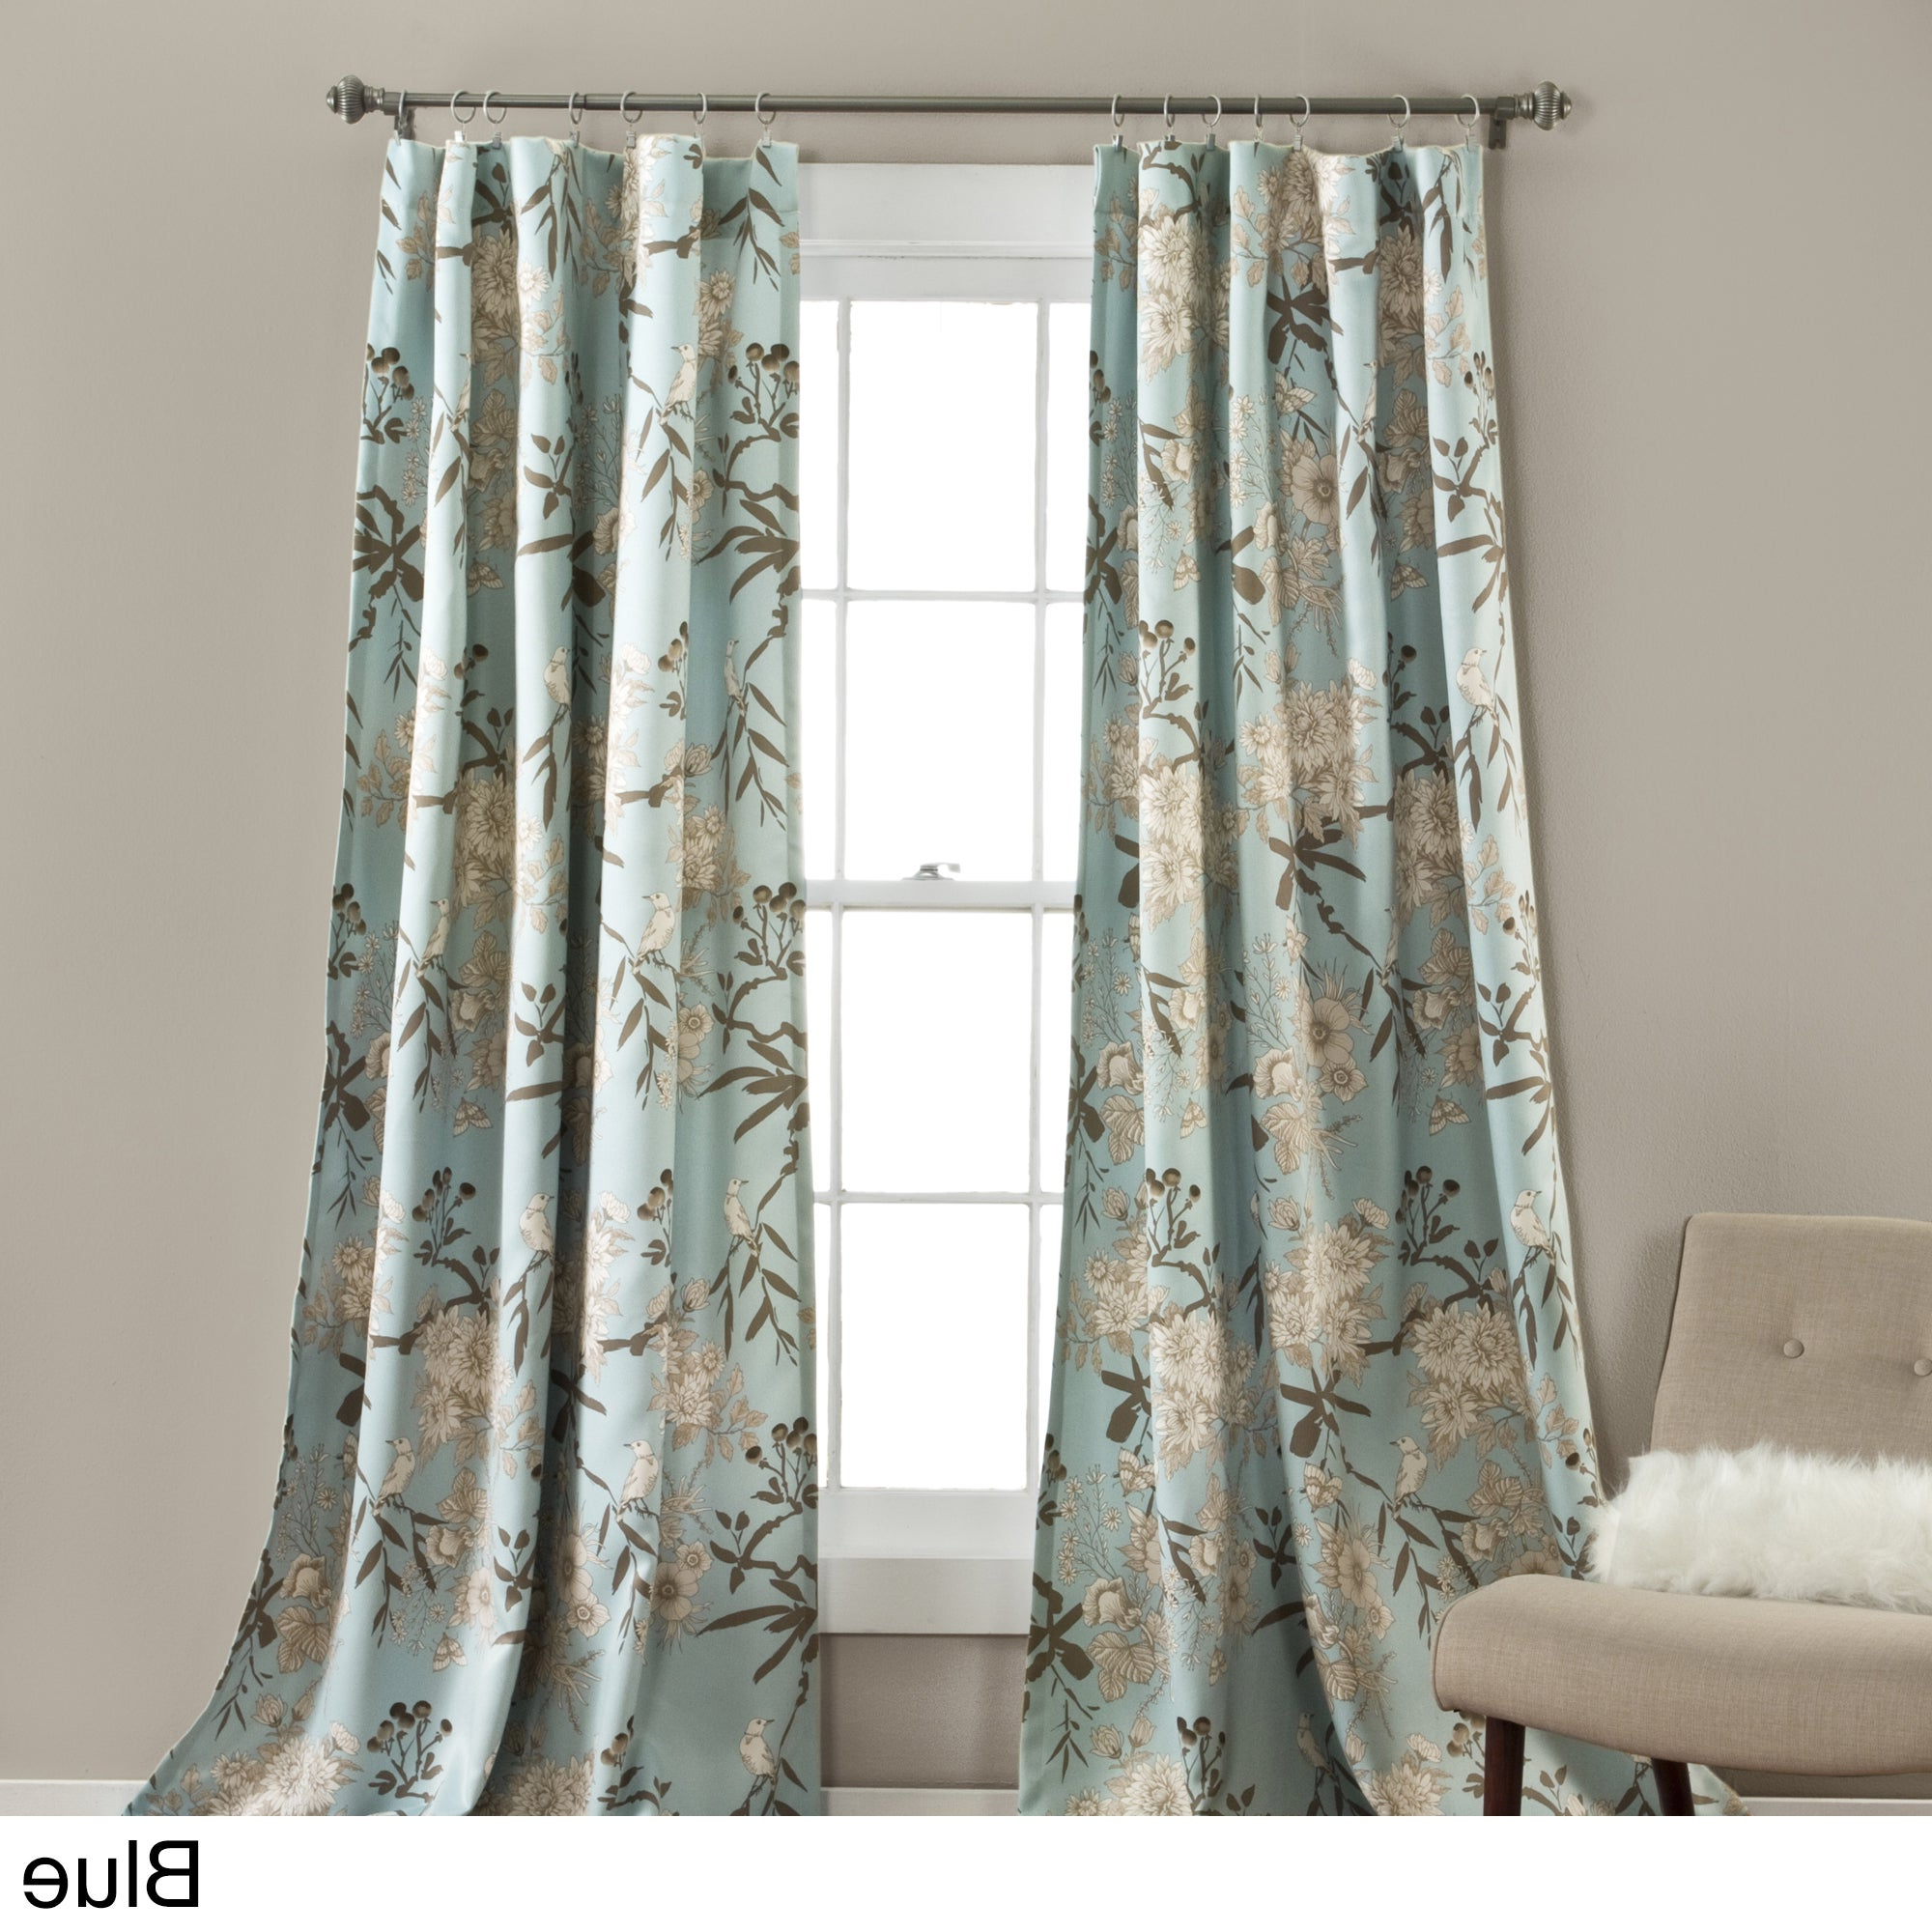 2020 The Gray Barn Dogwood Floral Curtain Panel Pair With Regard To Gray Barn Dogwood Floral Curtain Panel Pairs (View 3 of 20)